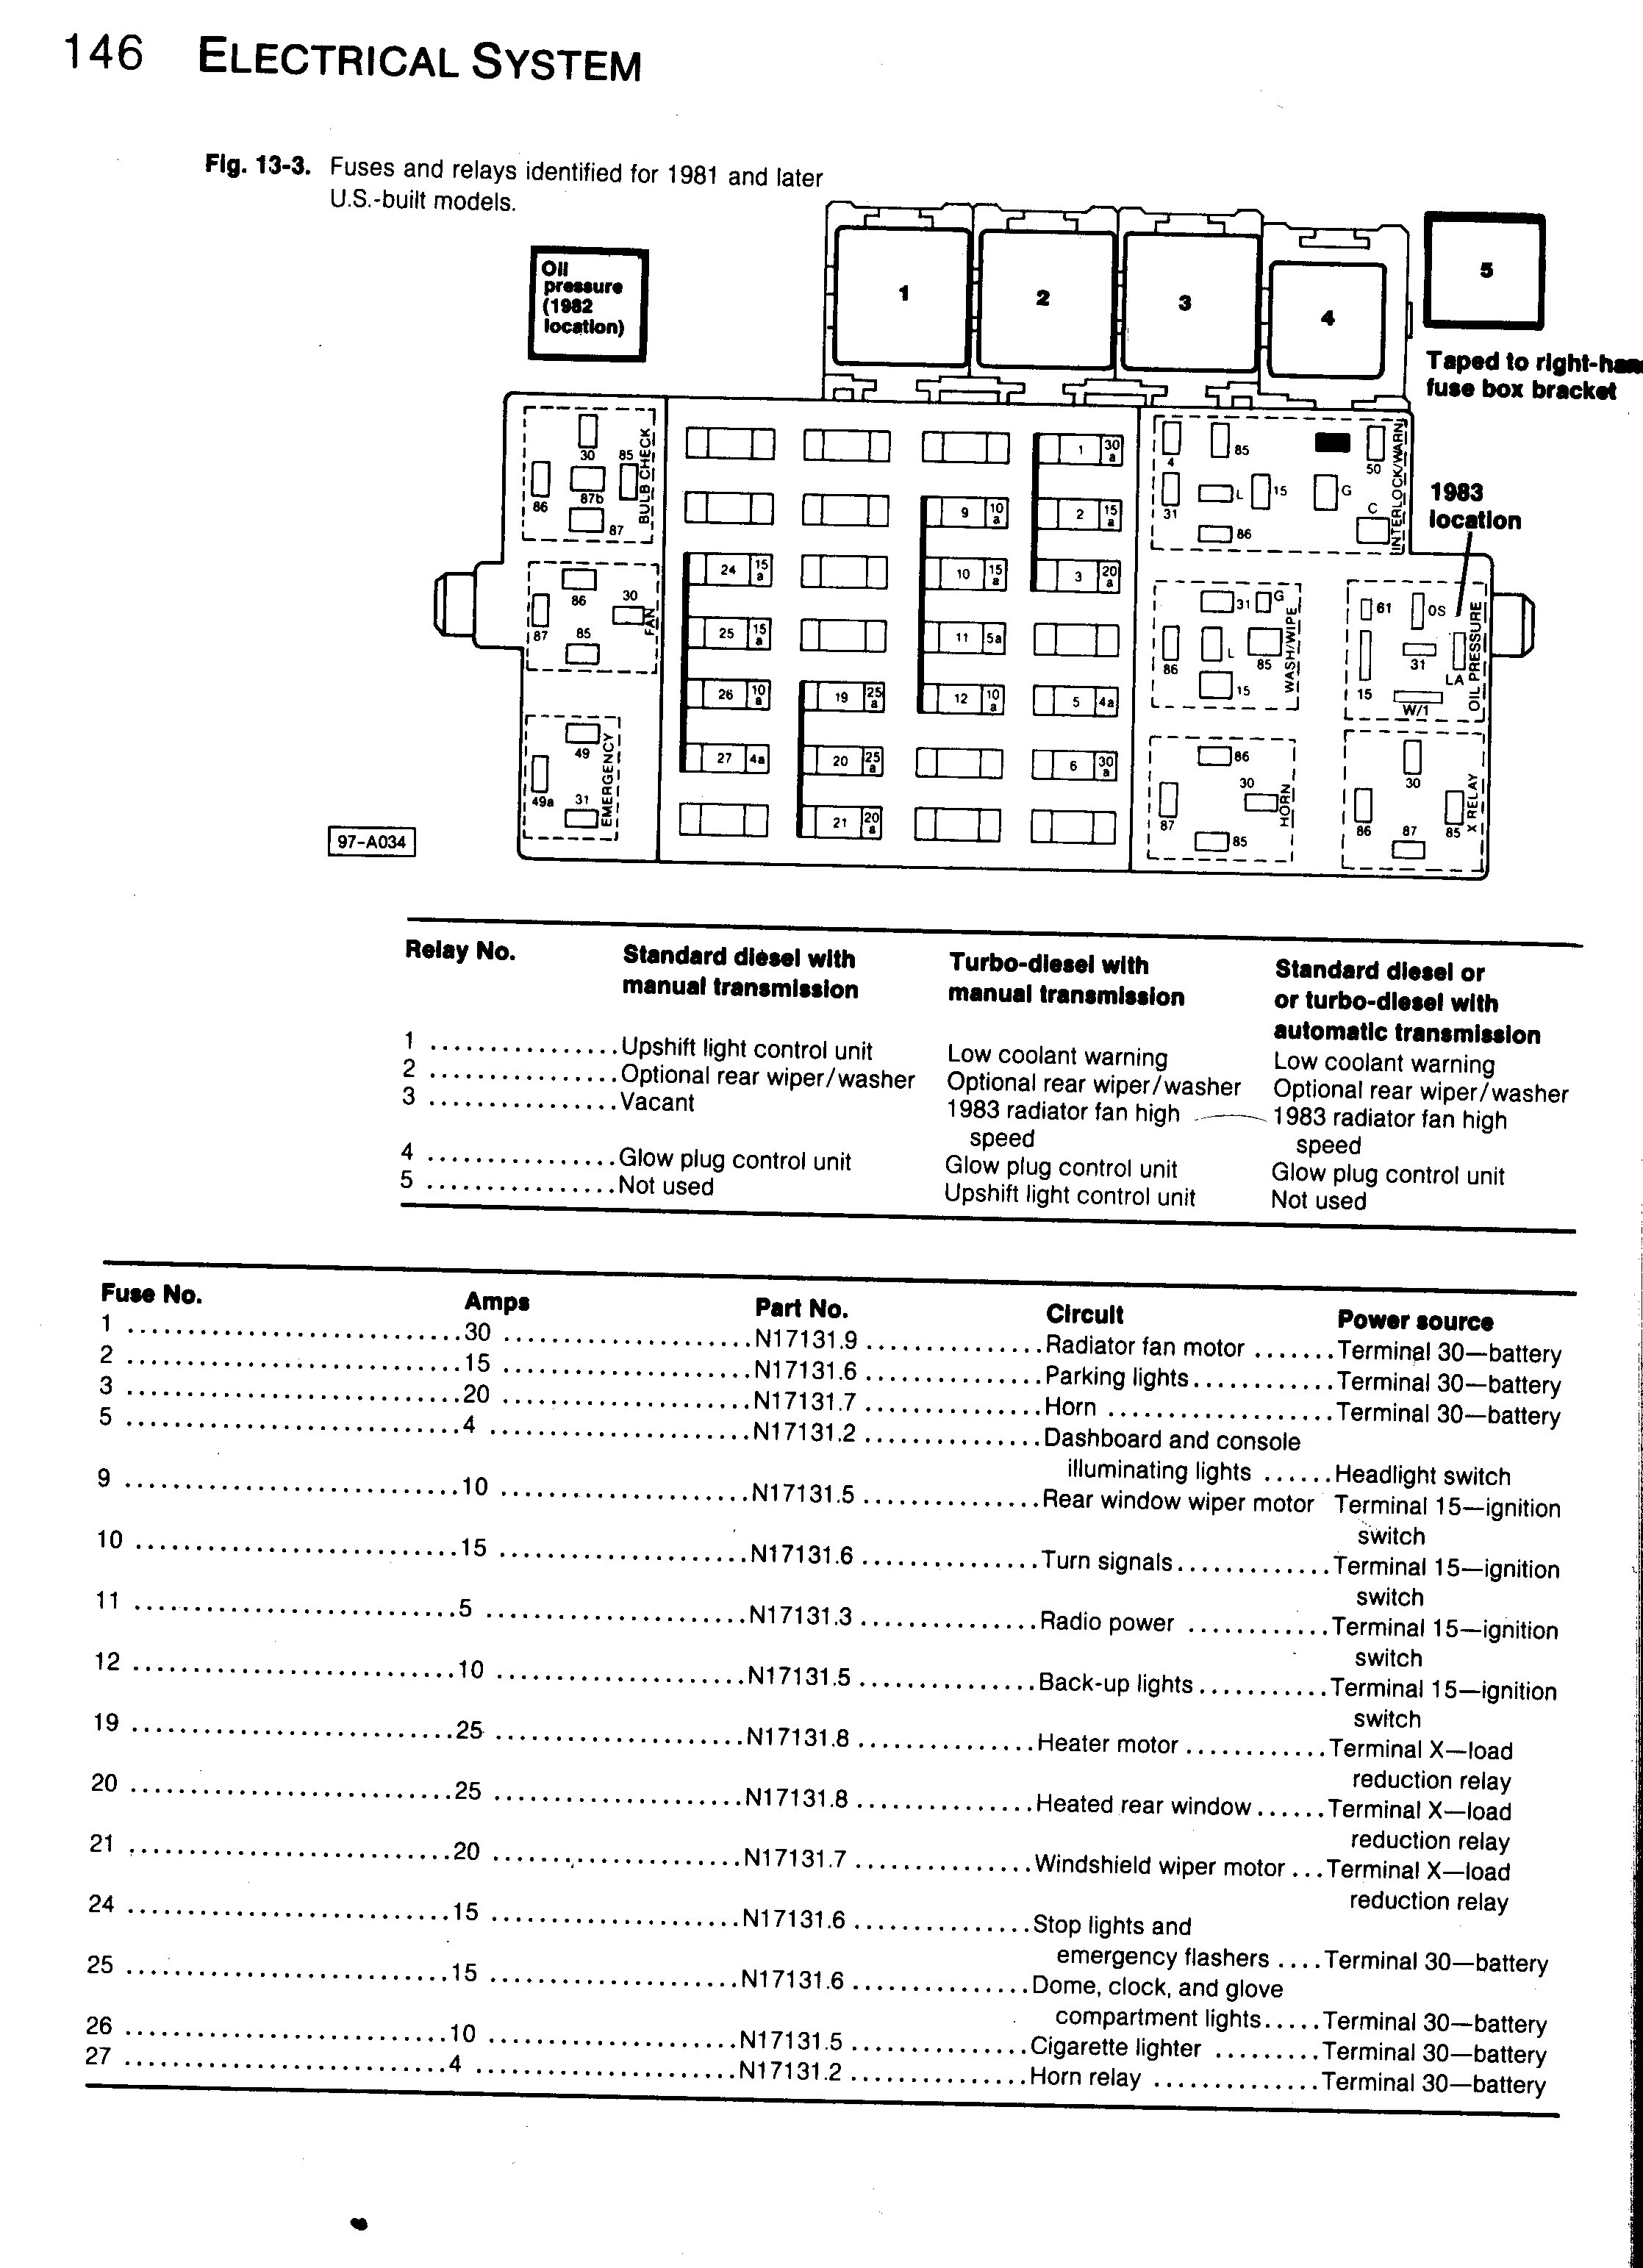 1999 Vw Fuse Box Diagram Wiring Schematic 2004 Ford F350 Explaned 2002 Jetta 2006 Passat Relay